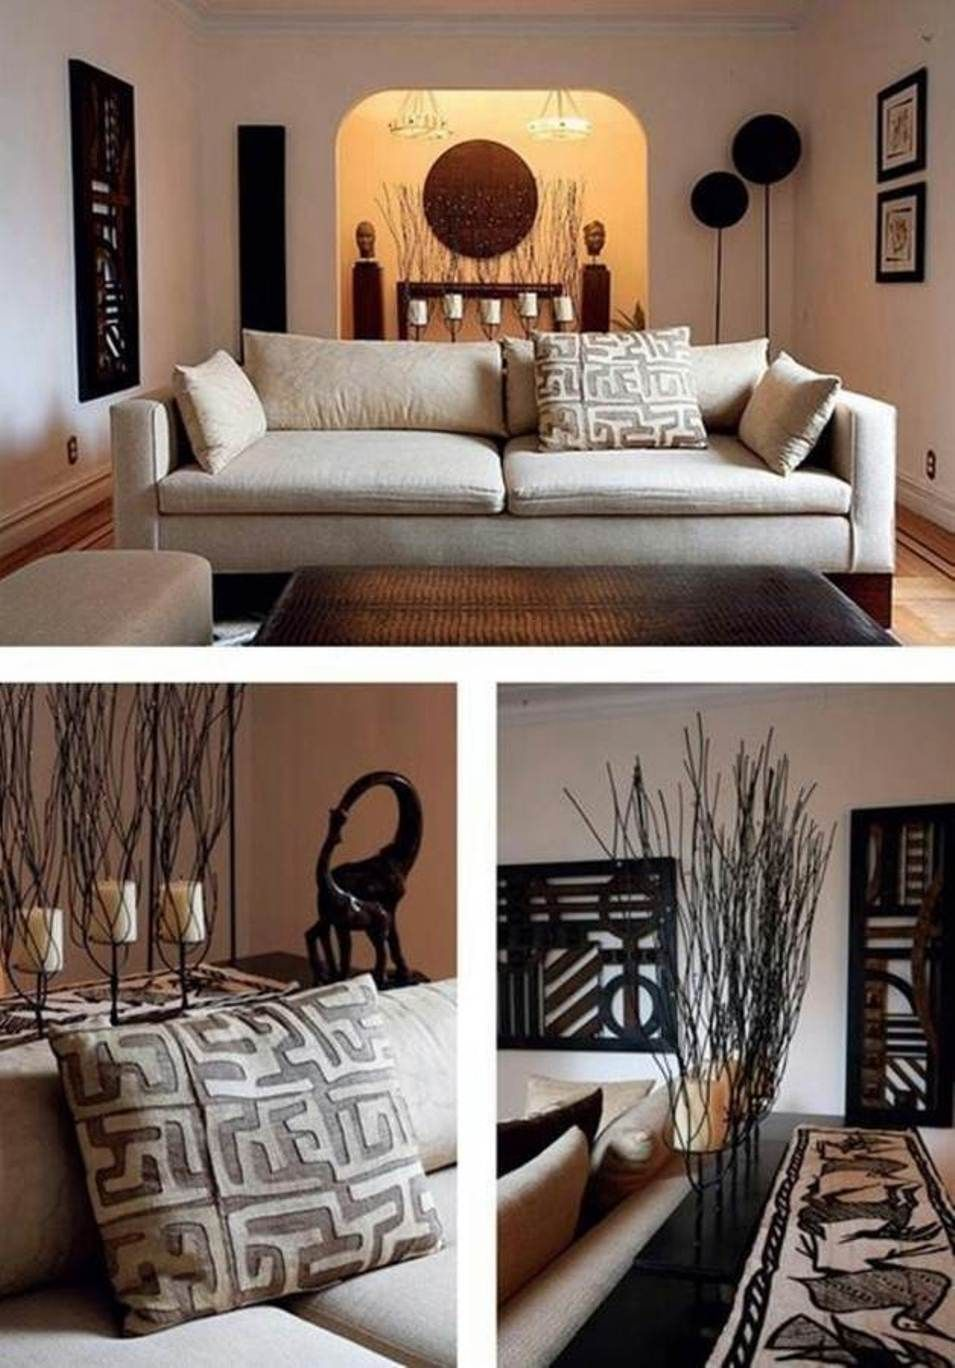 South african decorating ideas african tribal global for New york home decorations